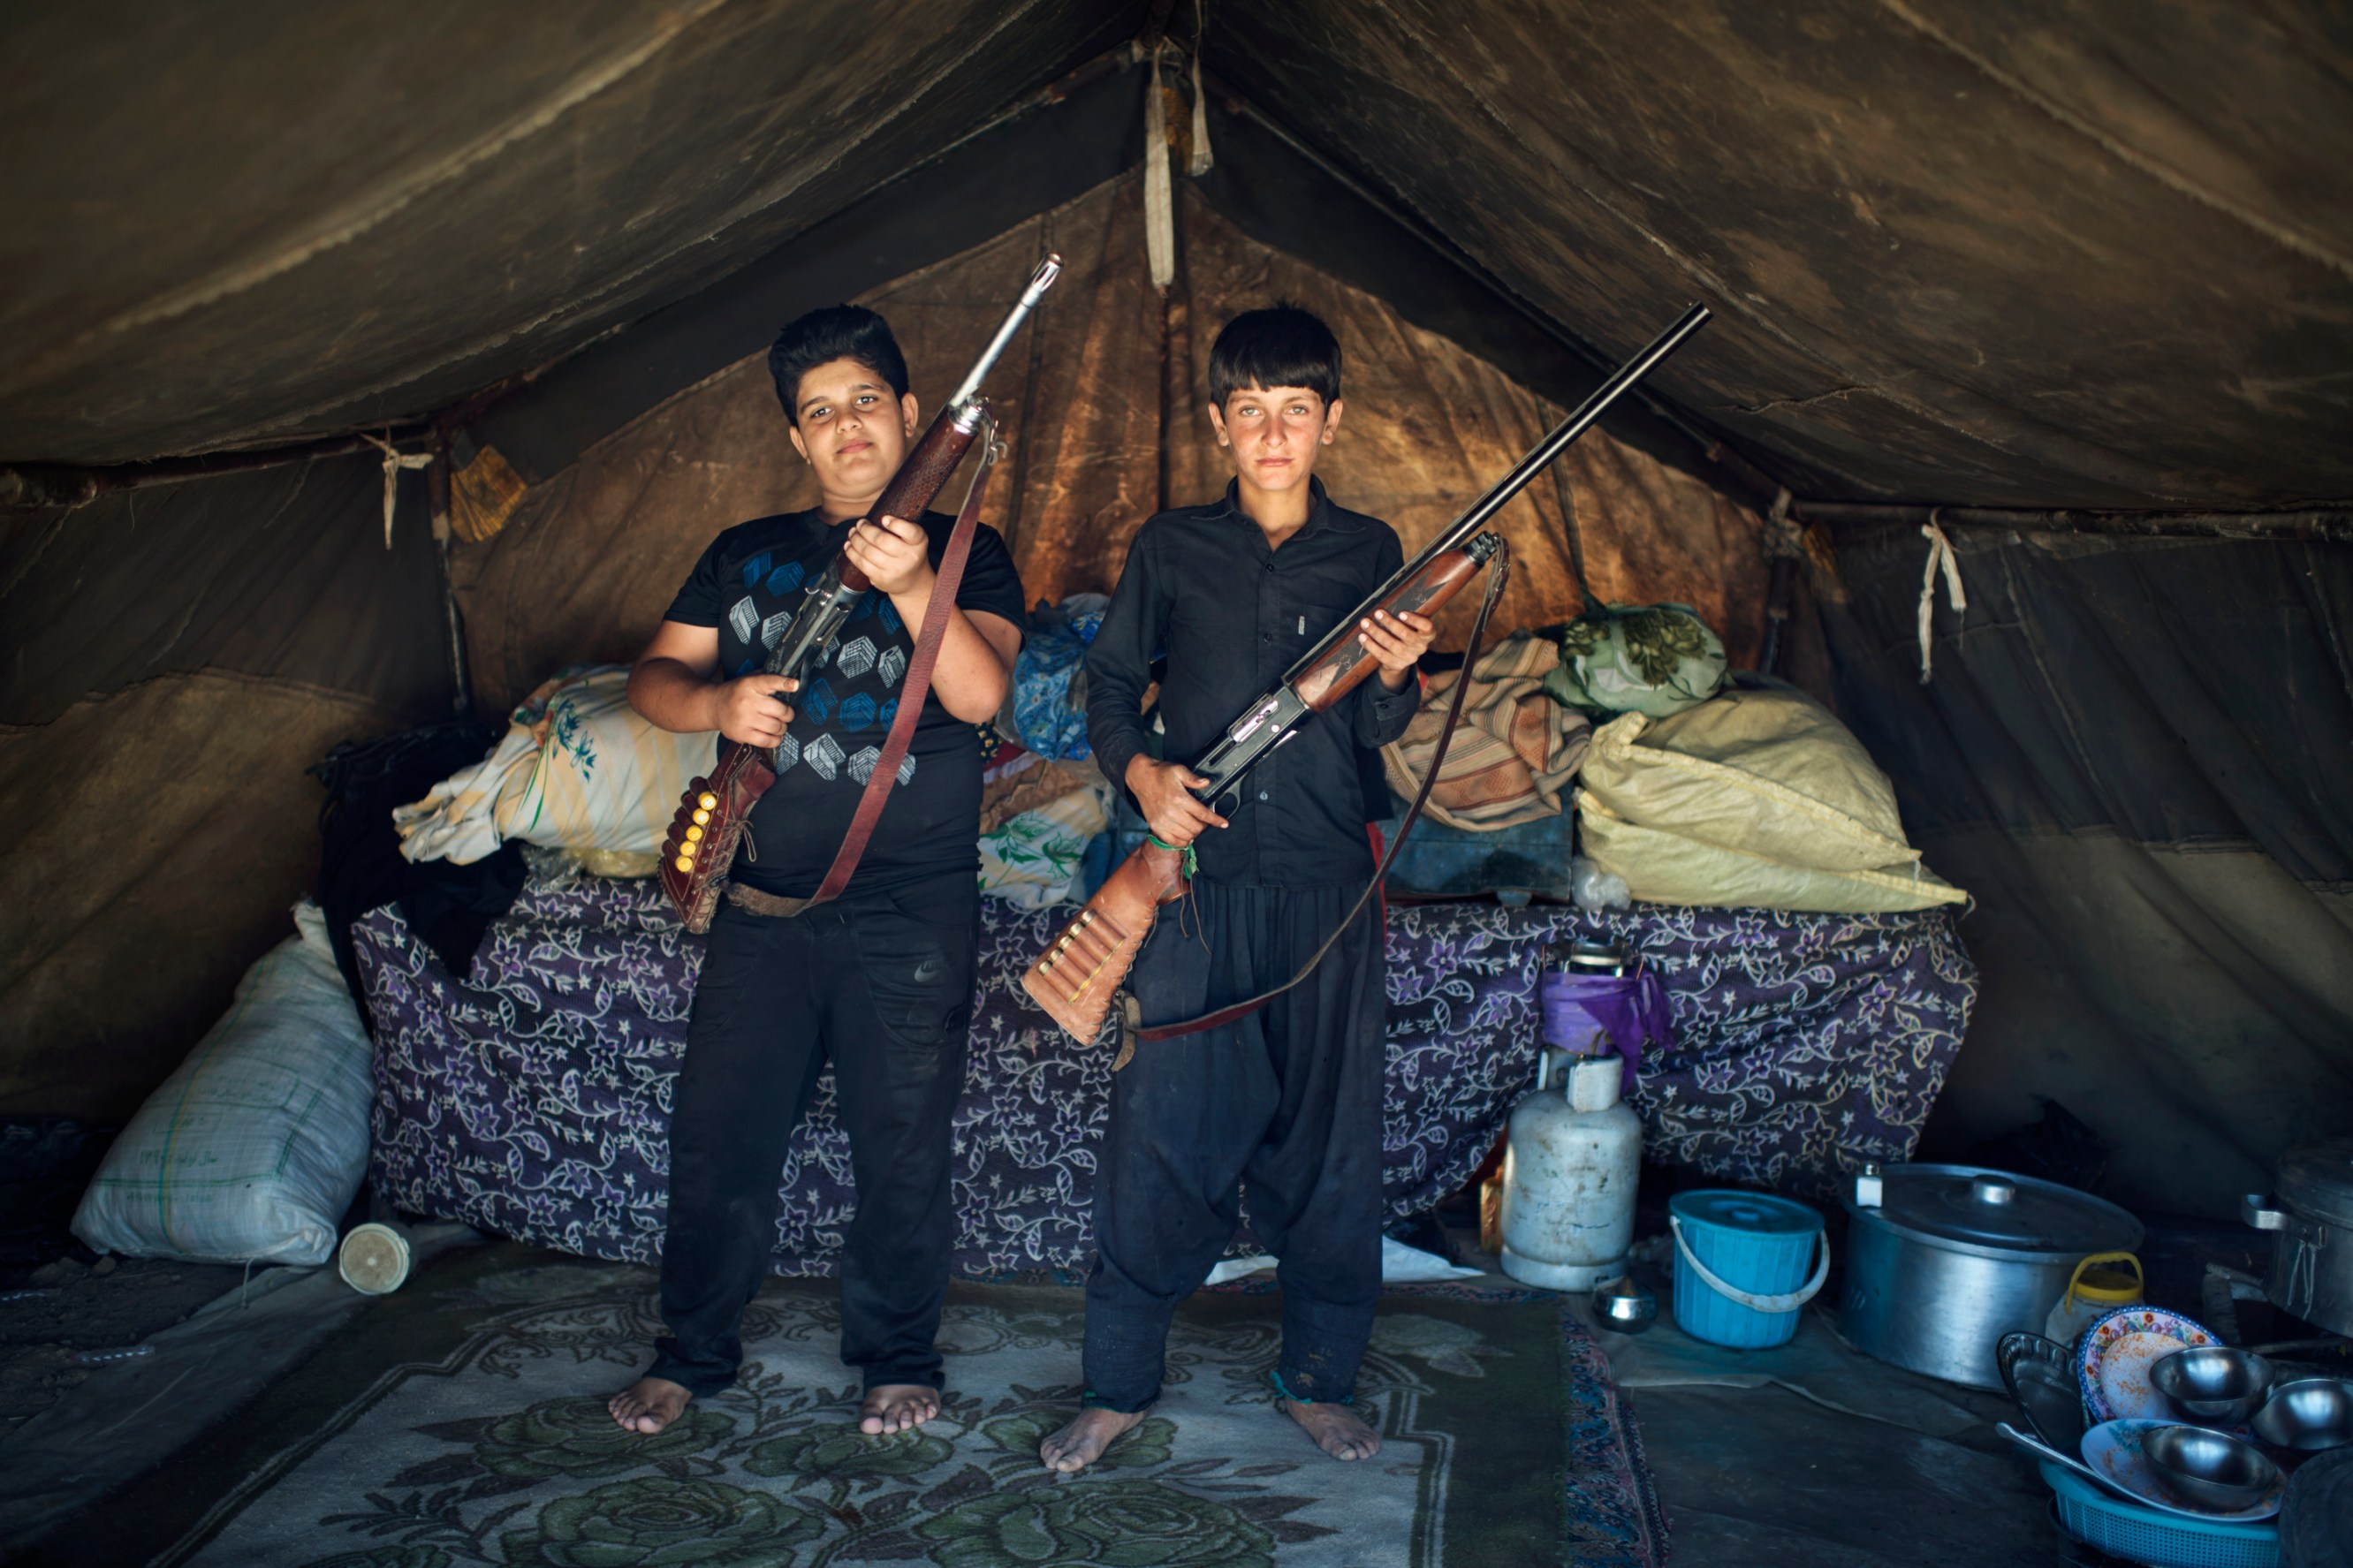 Two boys, belonging to the Lor tribe, pauses with riffles in a tent in Bazoft Valley.